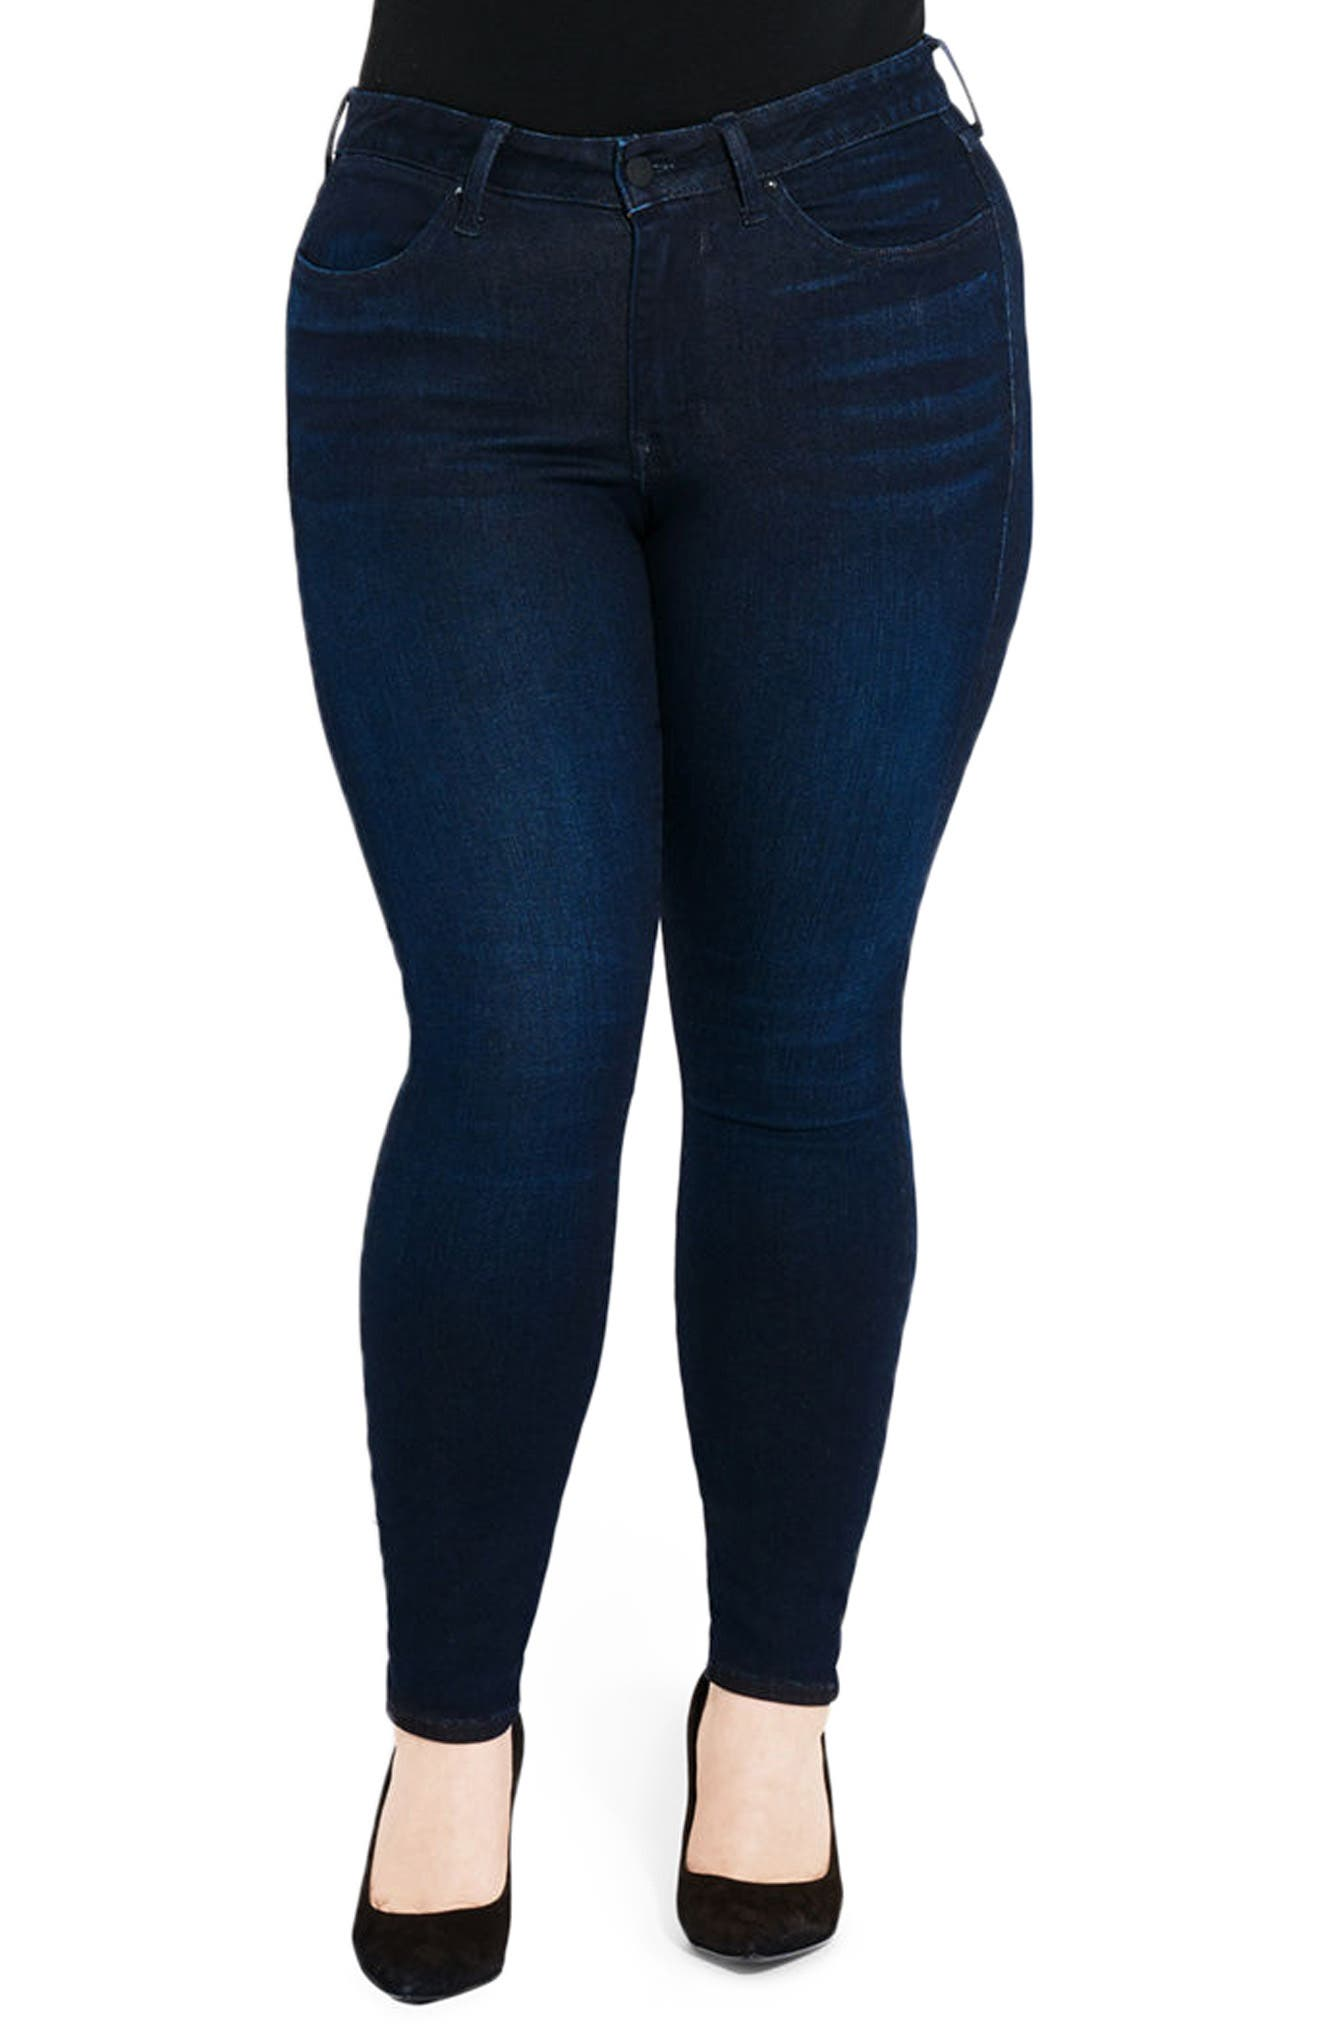 AYR The One Love High Waist Skinny Jeans (Jac's Jean) (Plus Size)